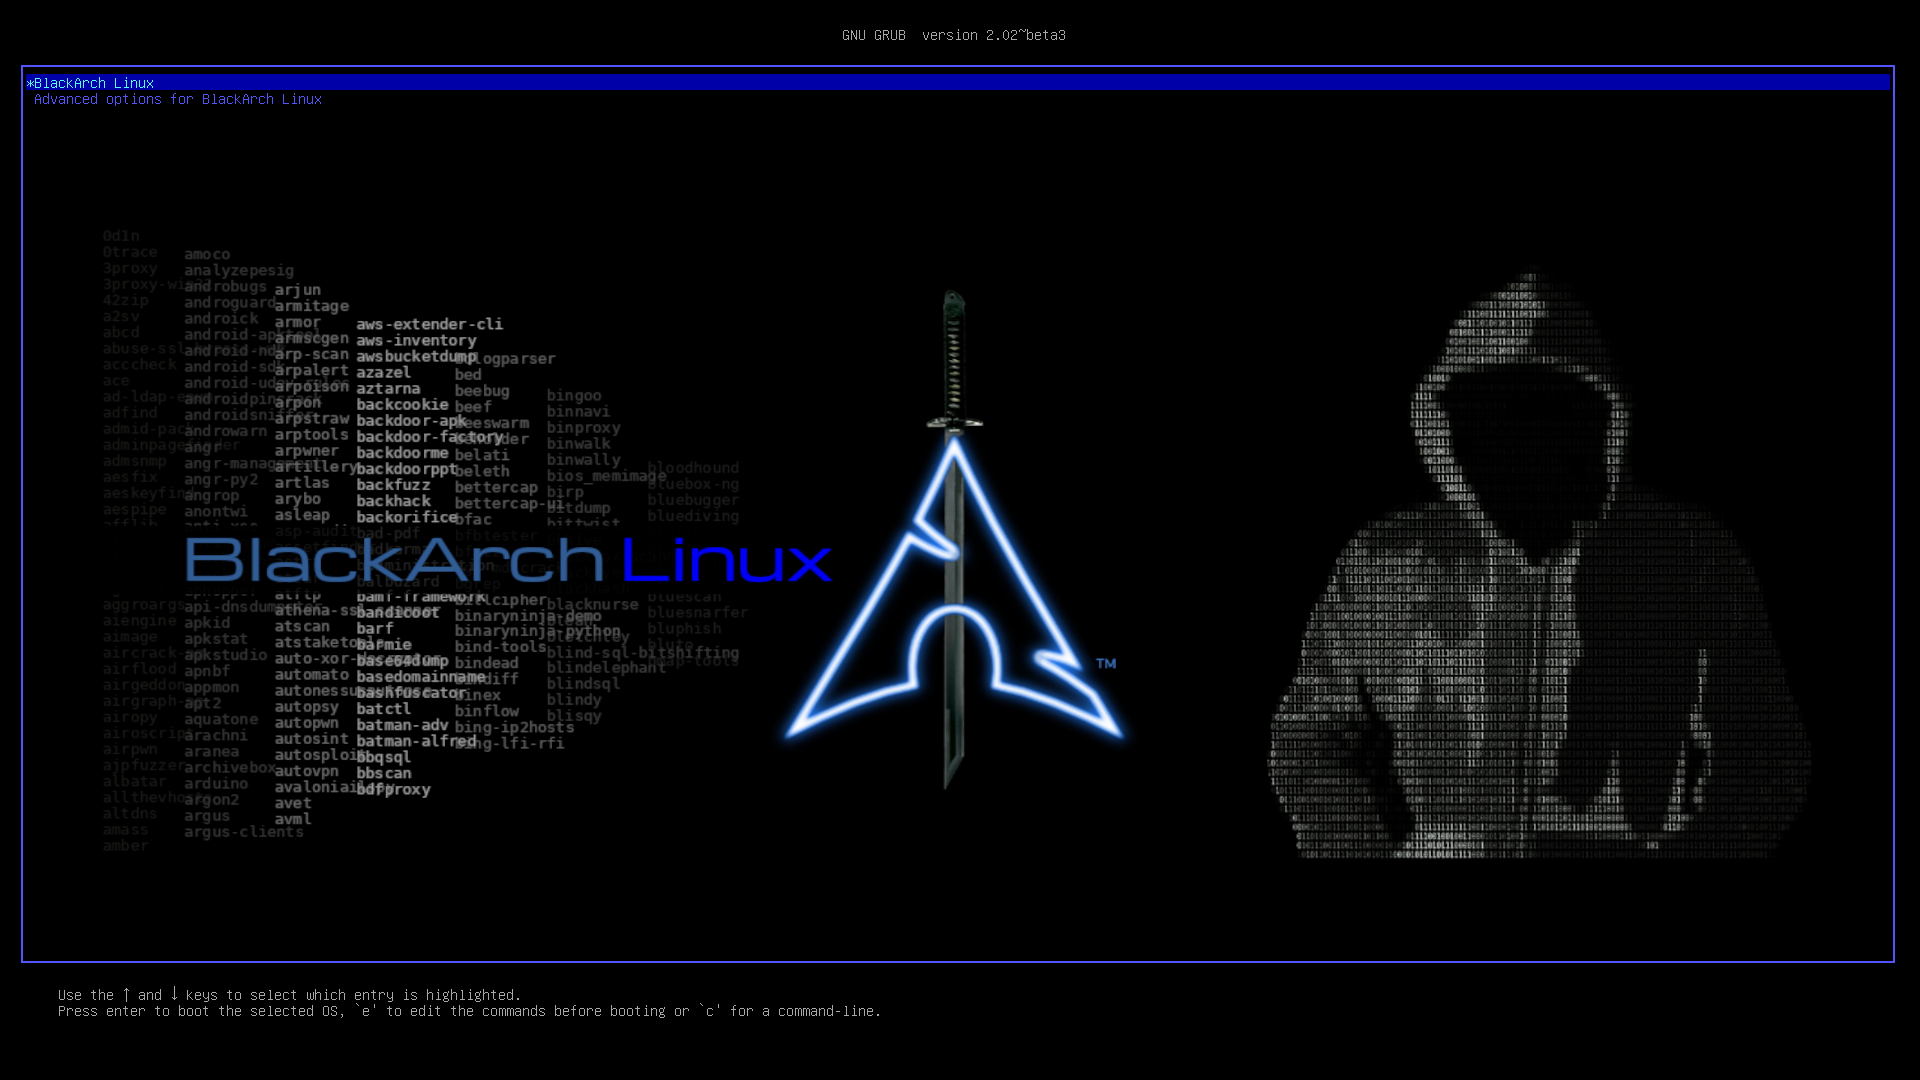 BlackArch Linux Grub